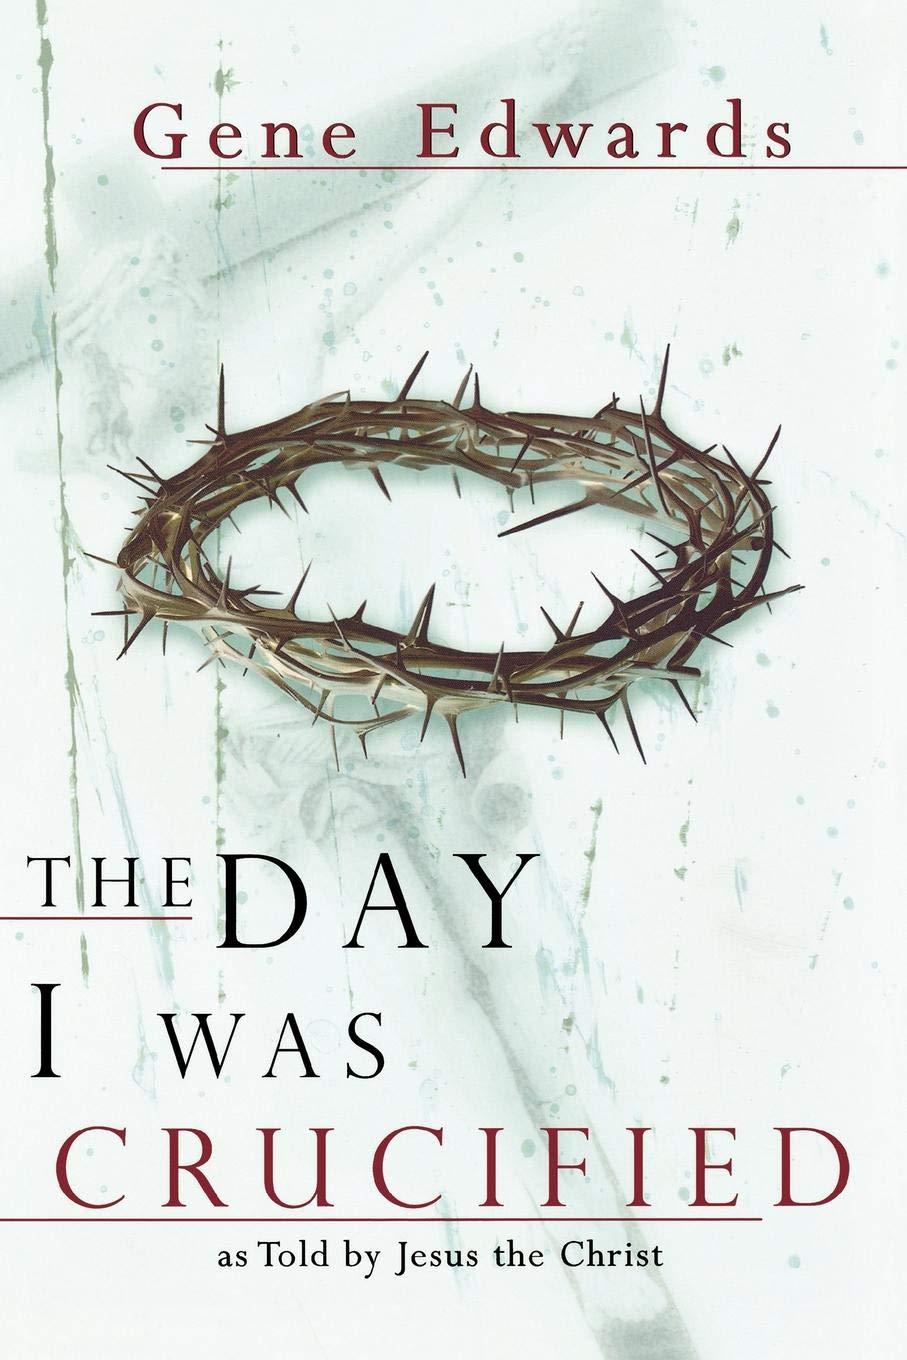 The Day I Was Crucified: As Told by Jesus Christ: Gene Edwards